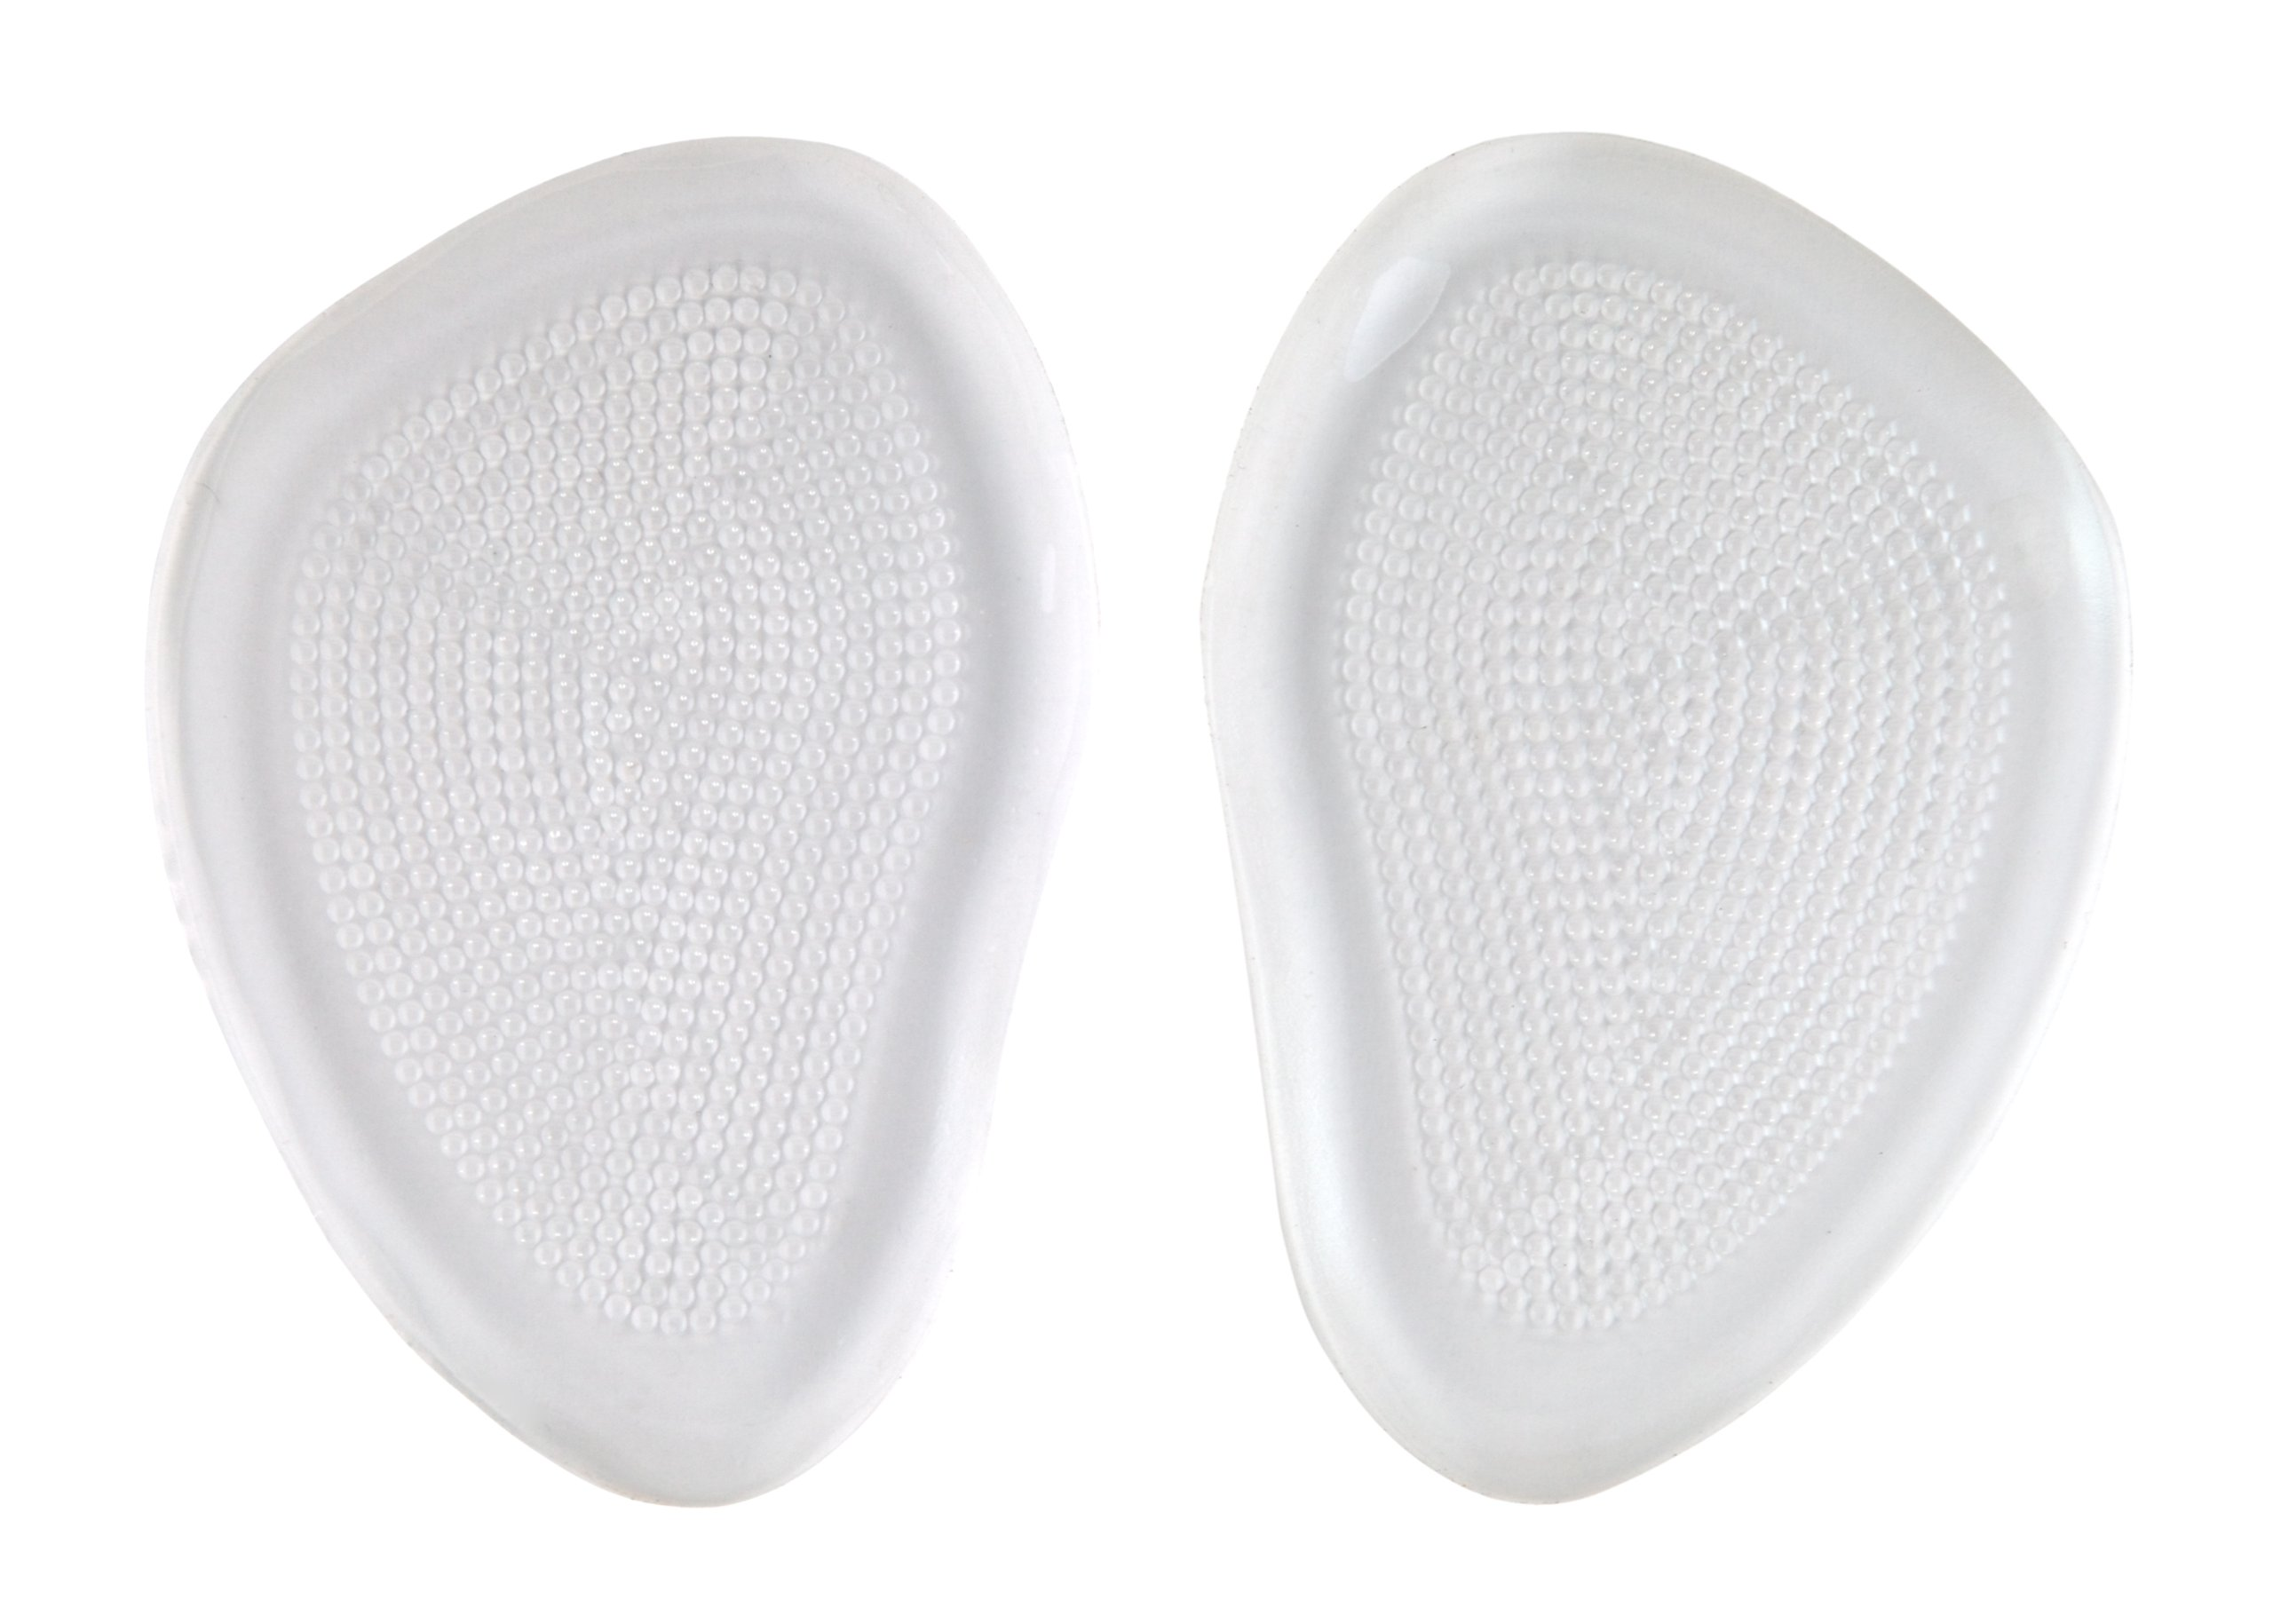 Belle of the Ball: Ball of Foot Gel Cushion Shoe Pads, 4 Pack, High Heel Pain Relief - Spring Weddings